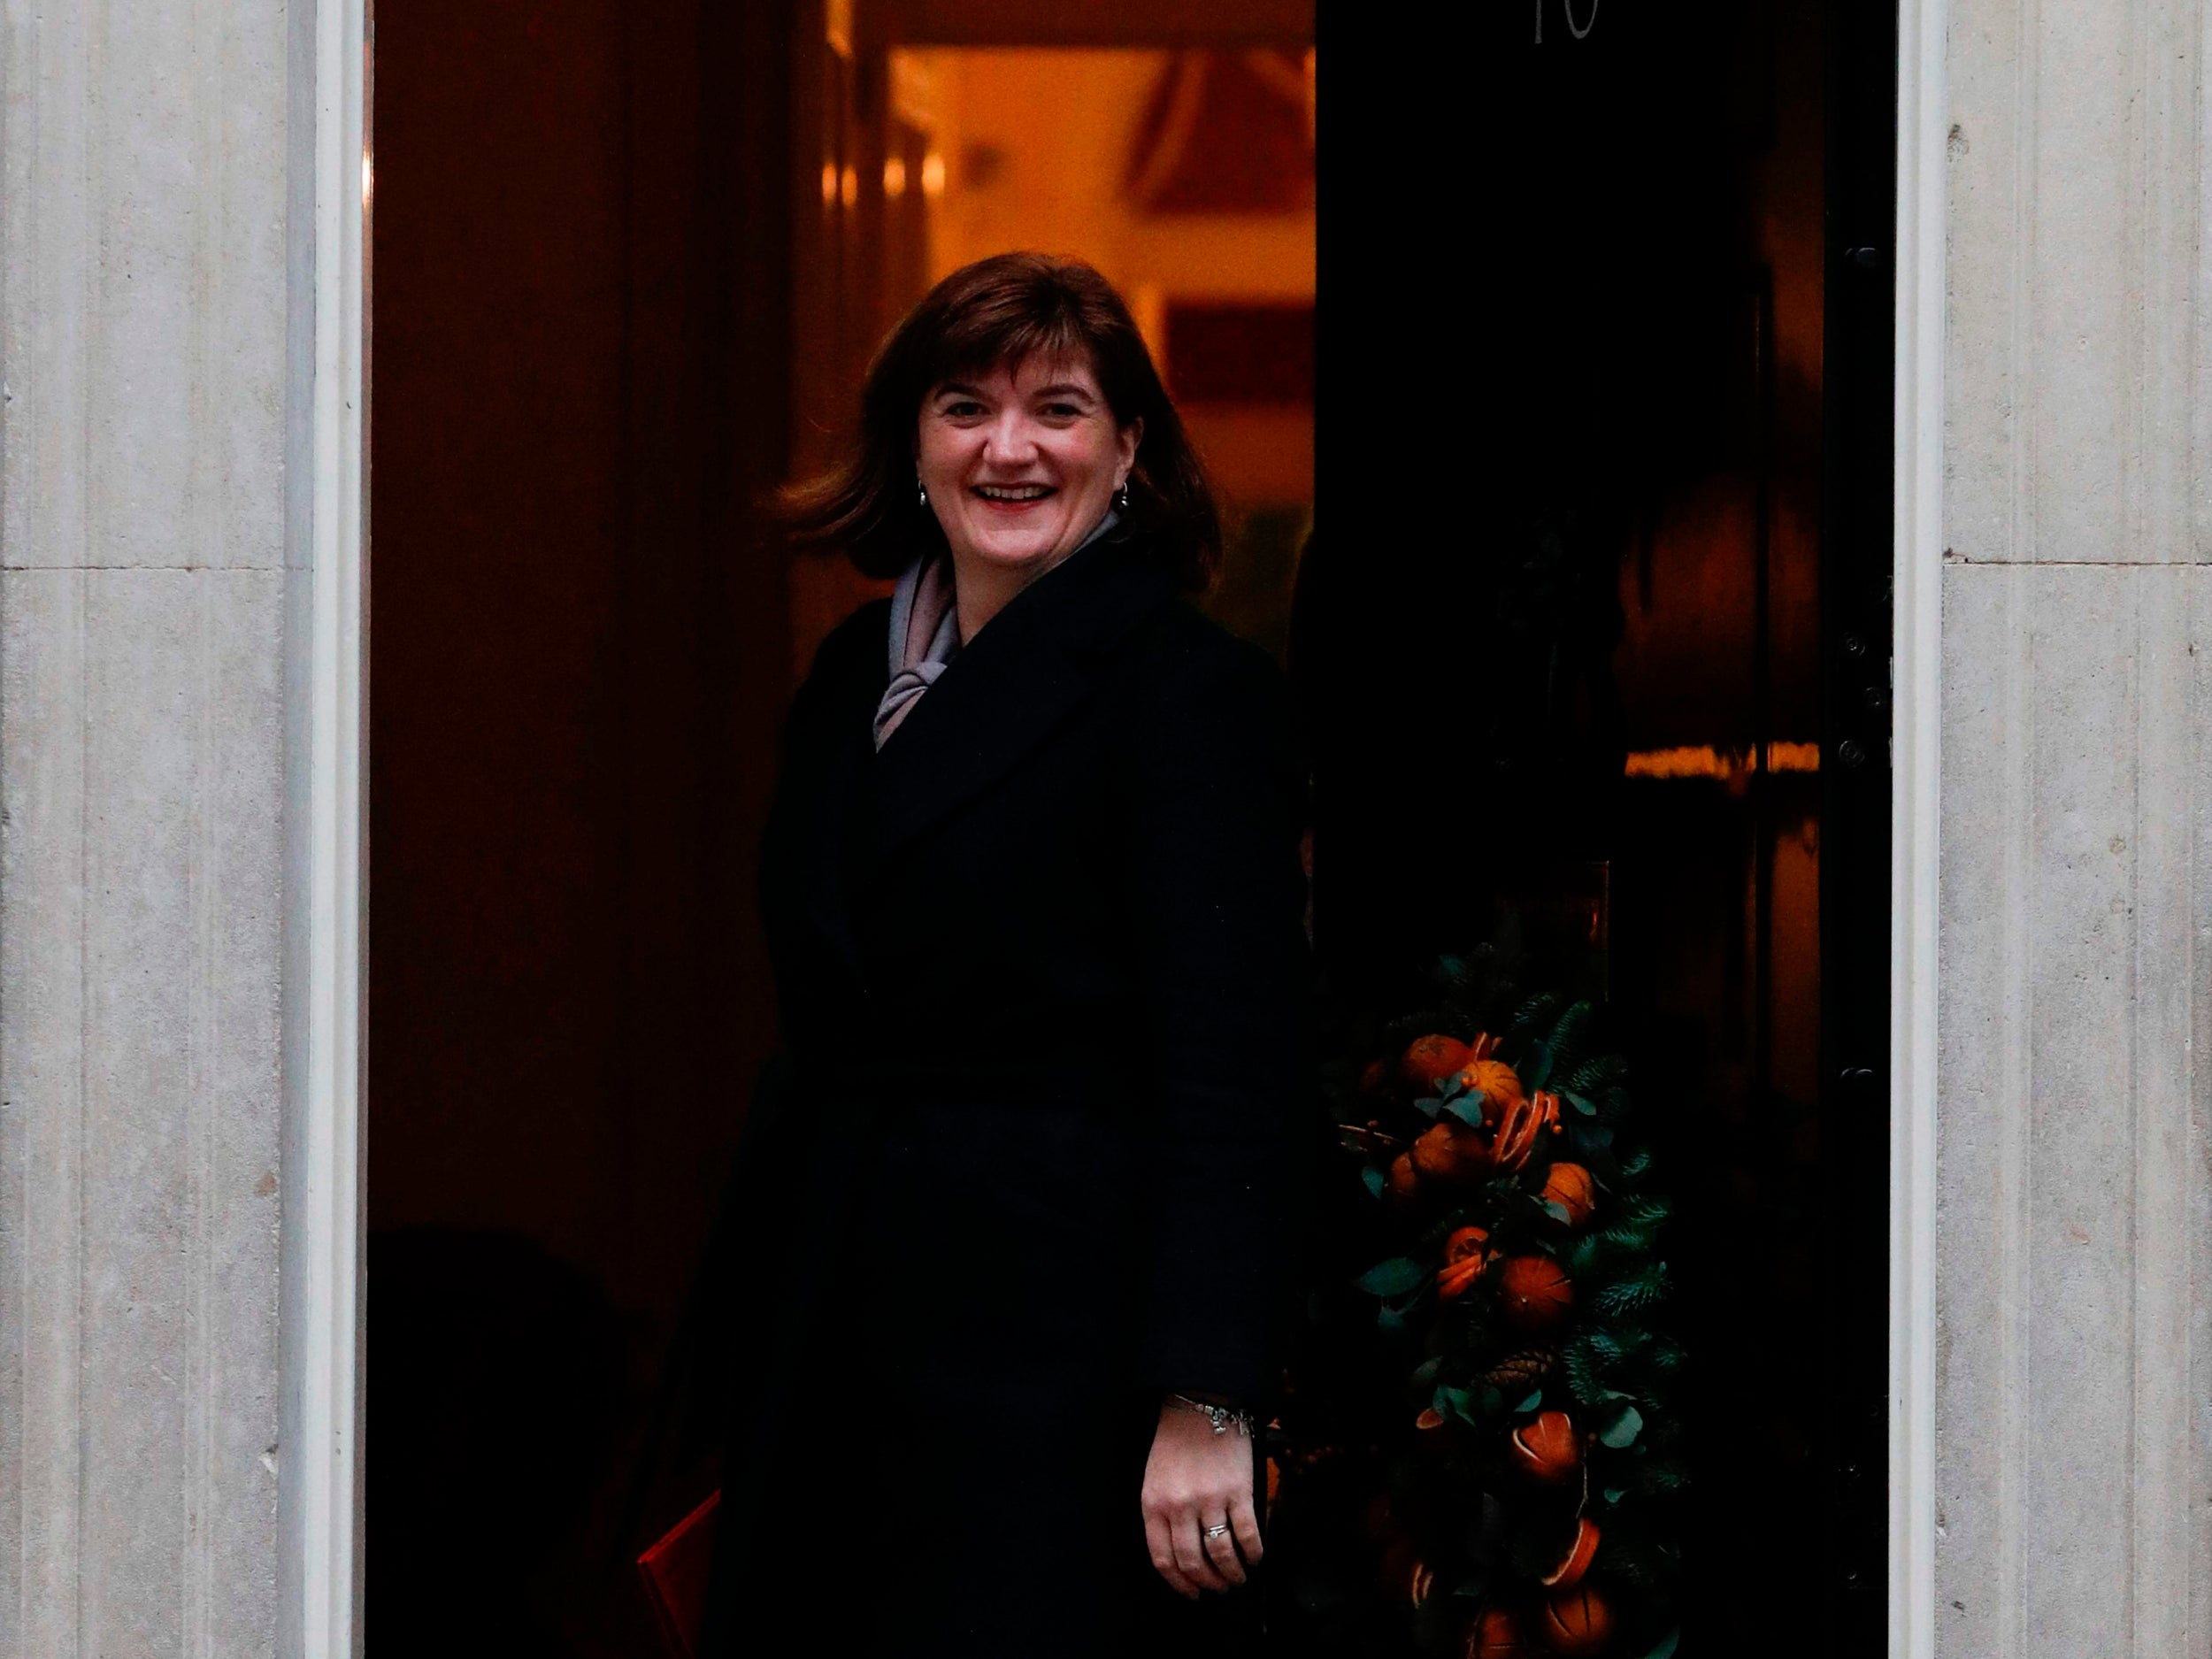 Culture secretary Nicky Morgan suggests end to all-male shortlists after Oscars diversity row